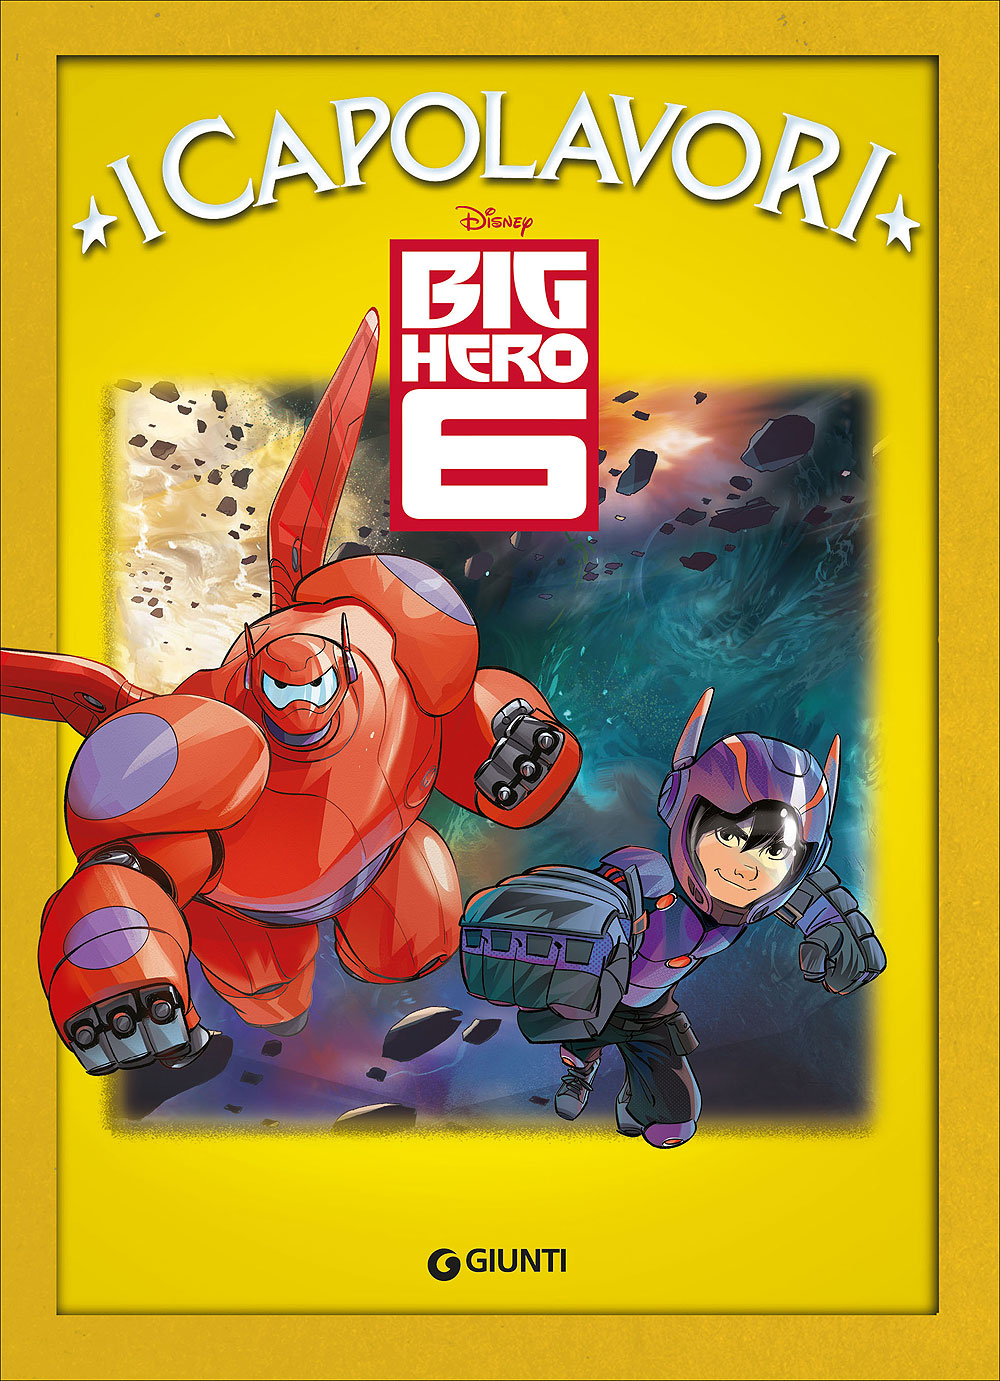 Big Hero 6 - I Capolavori